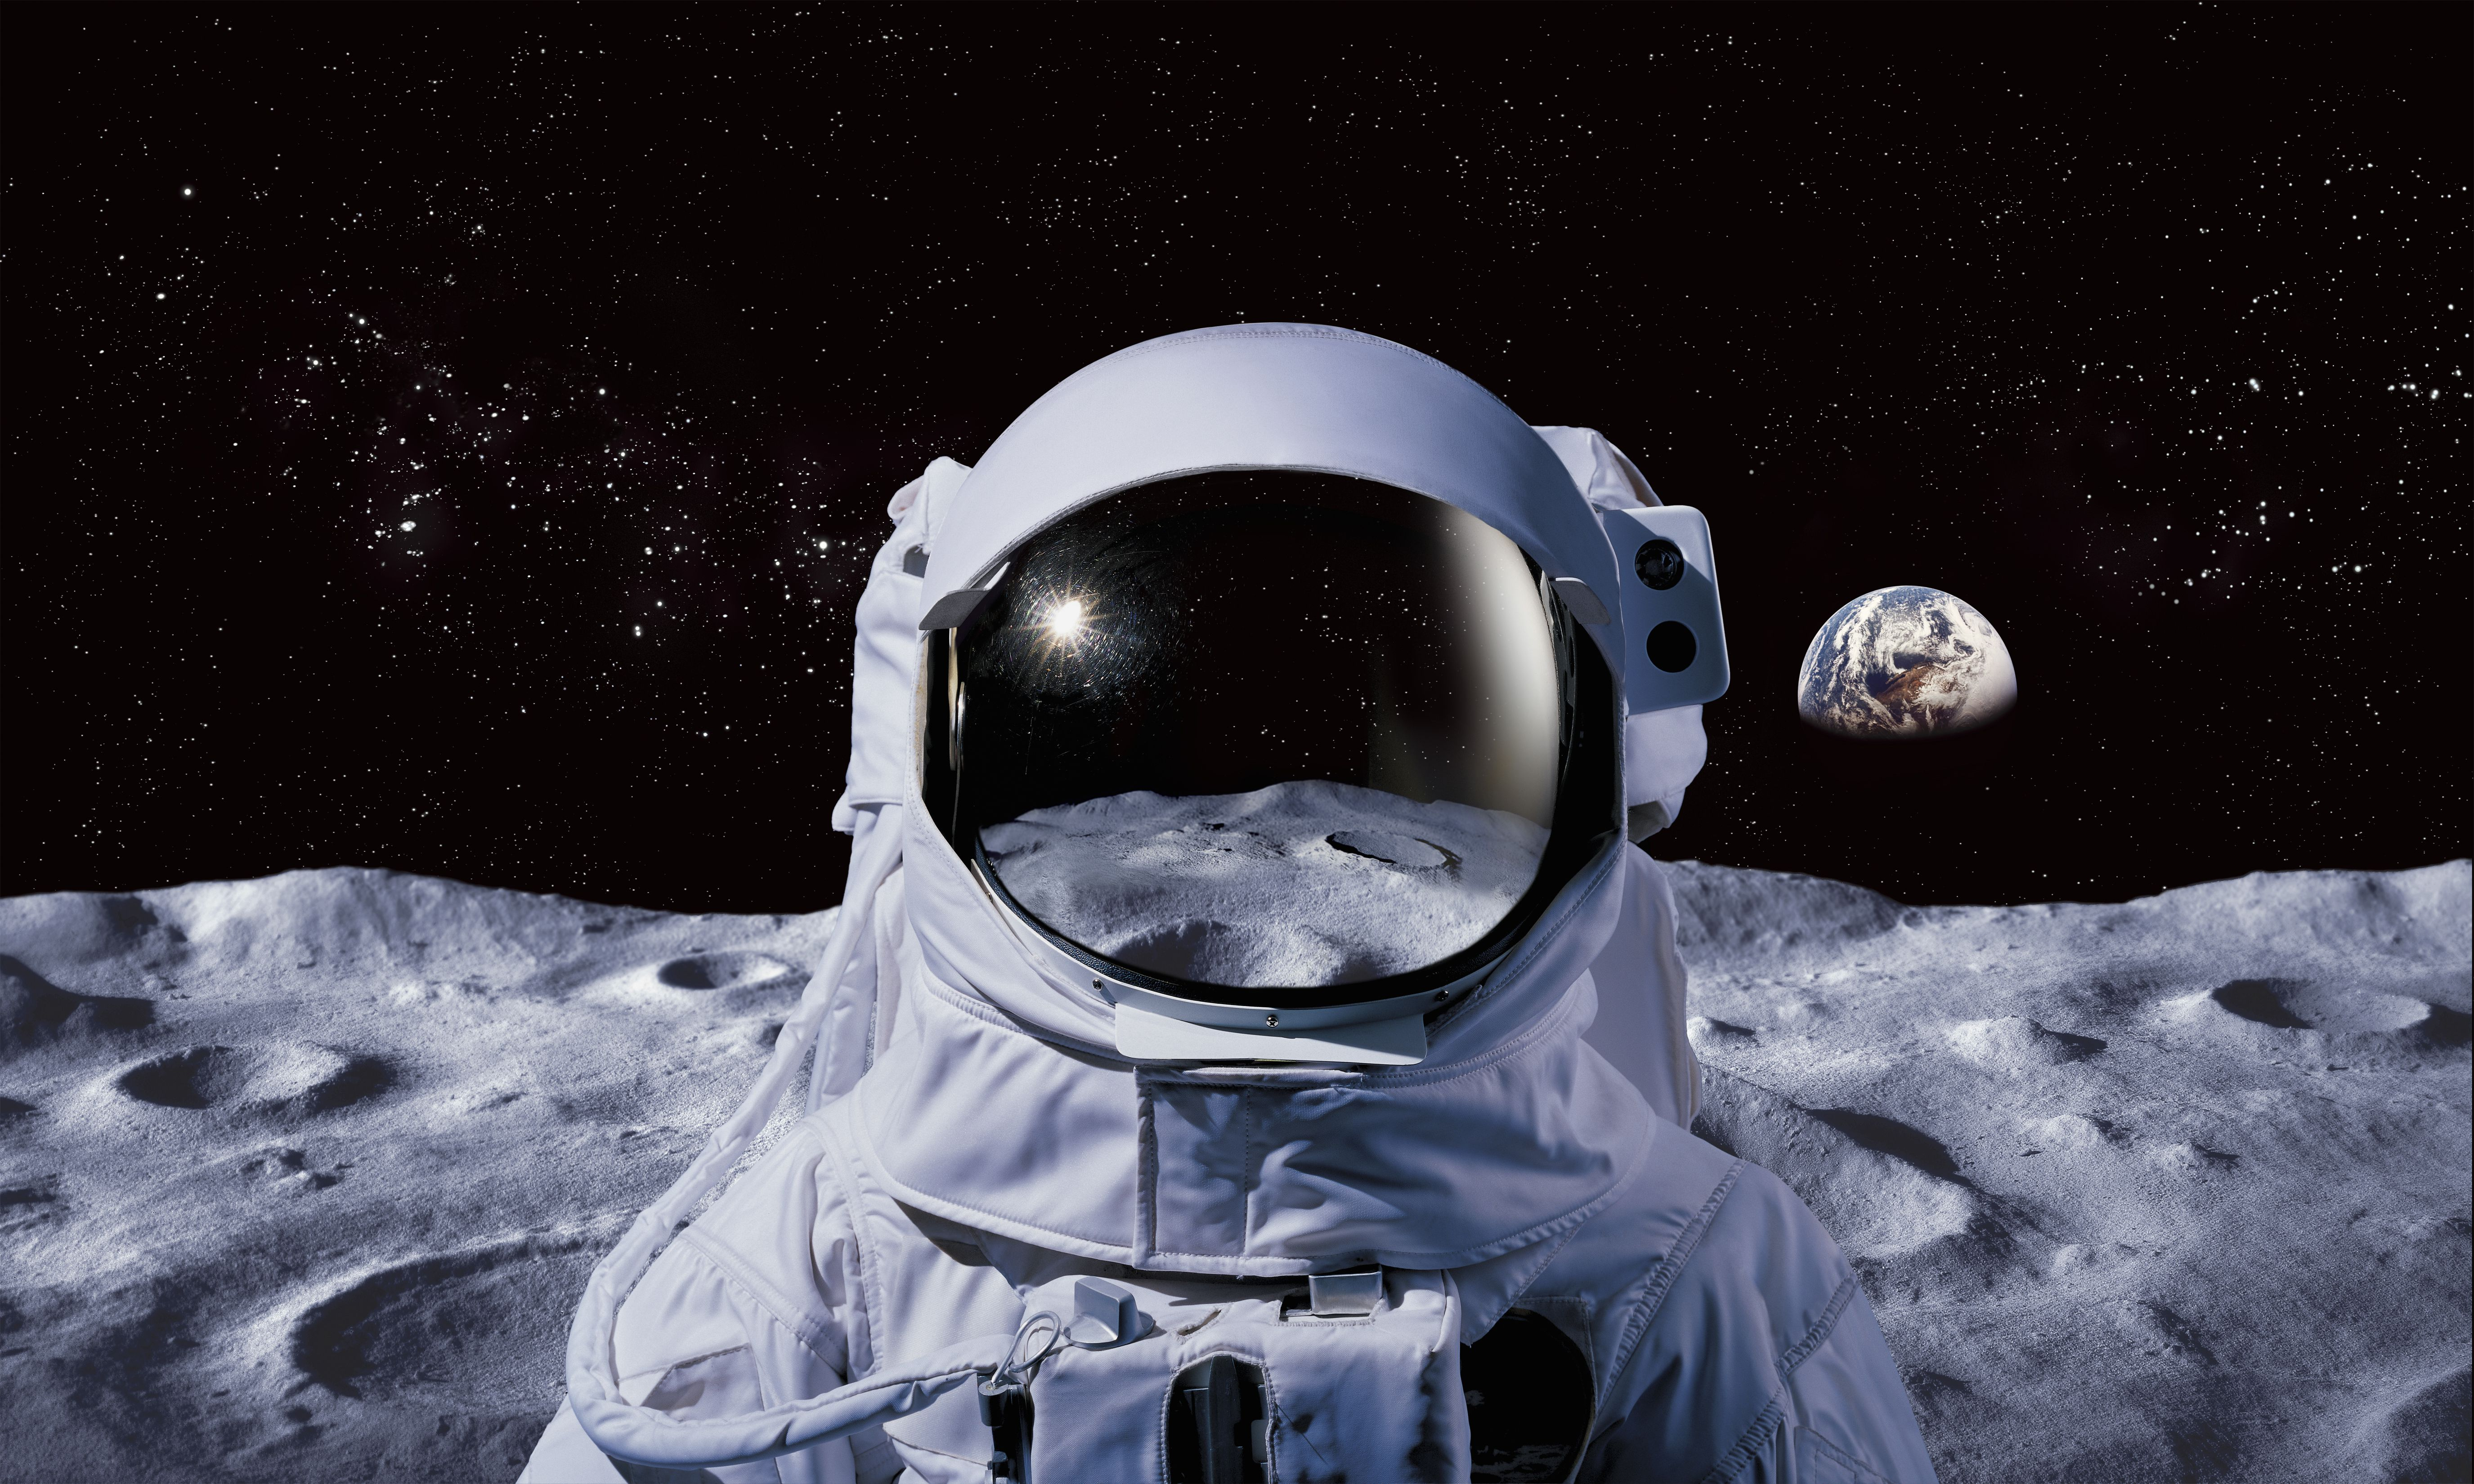 You could survive a couple of minutes in space without a spacesuit.